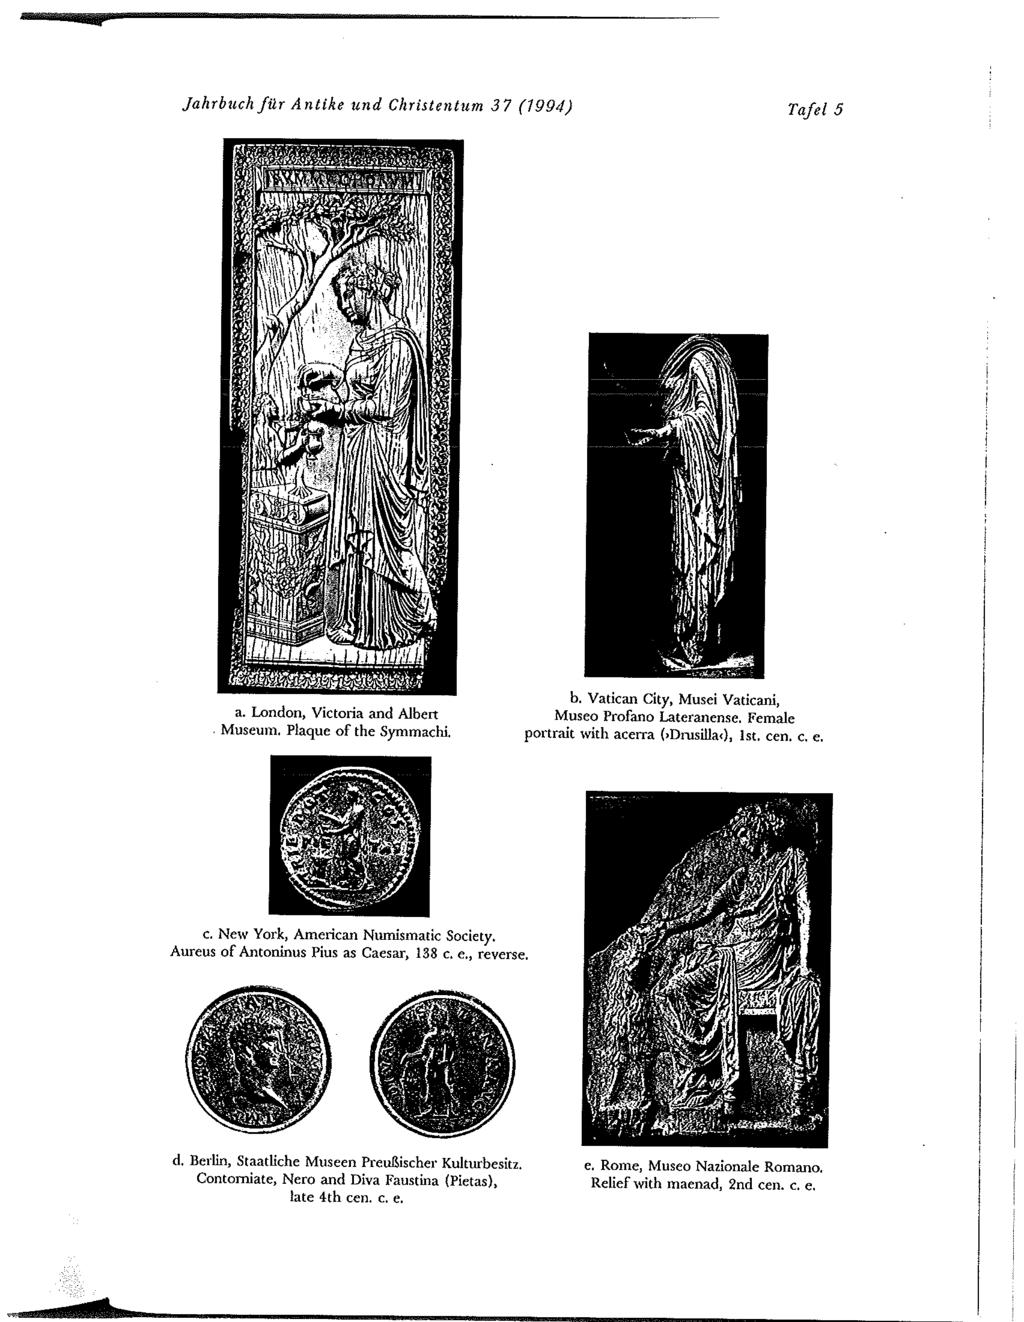 Jahrbuch fi2r Antike und Christentum 37 (1994) Taler 5 a. London, Victoria and Albert Museum. Plaque of the Symmachi. b. Vatican City, Musei Vaticani, Museo Profano Latermlense.